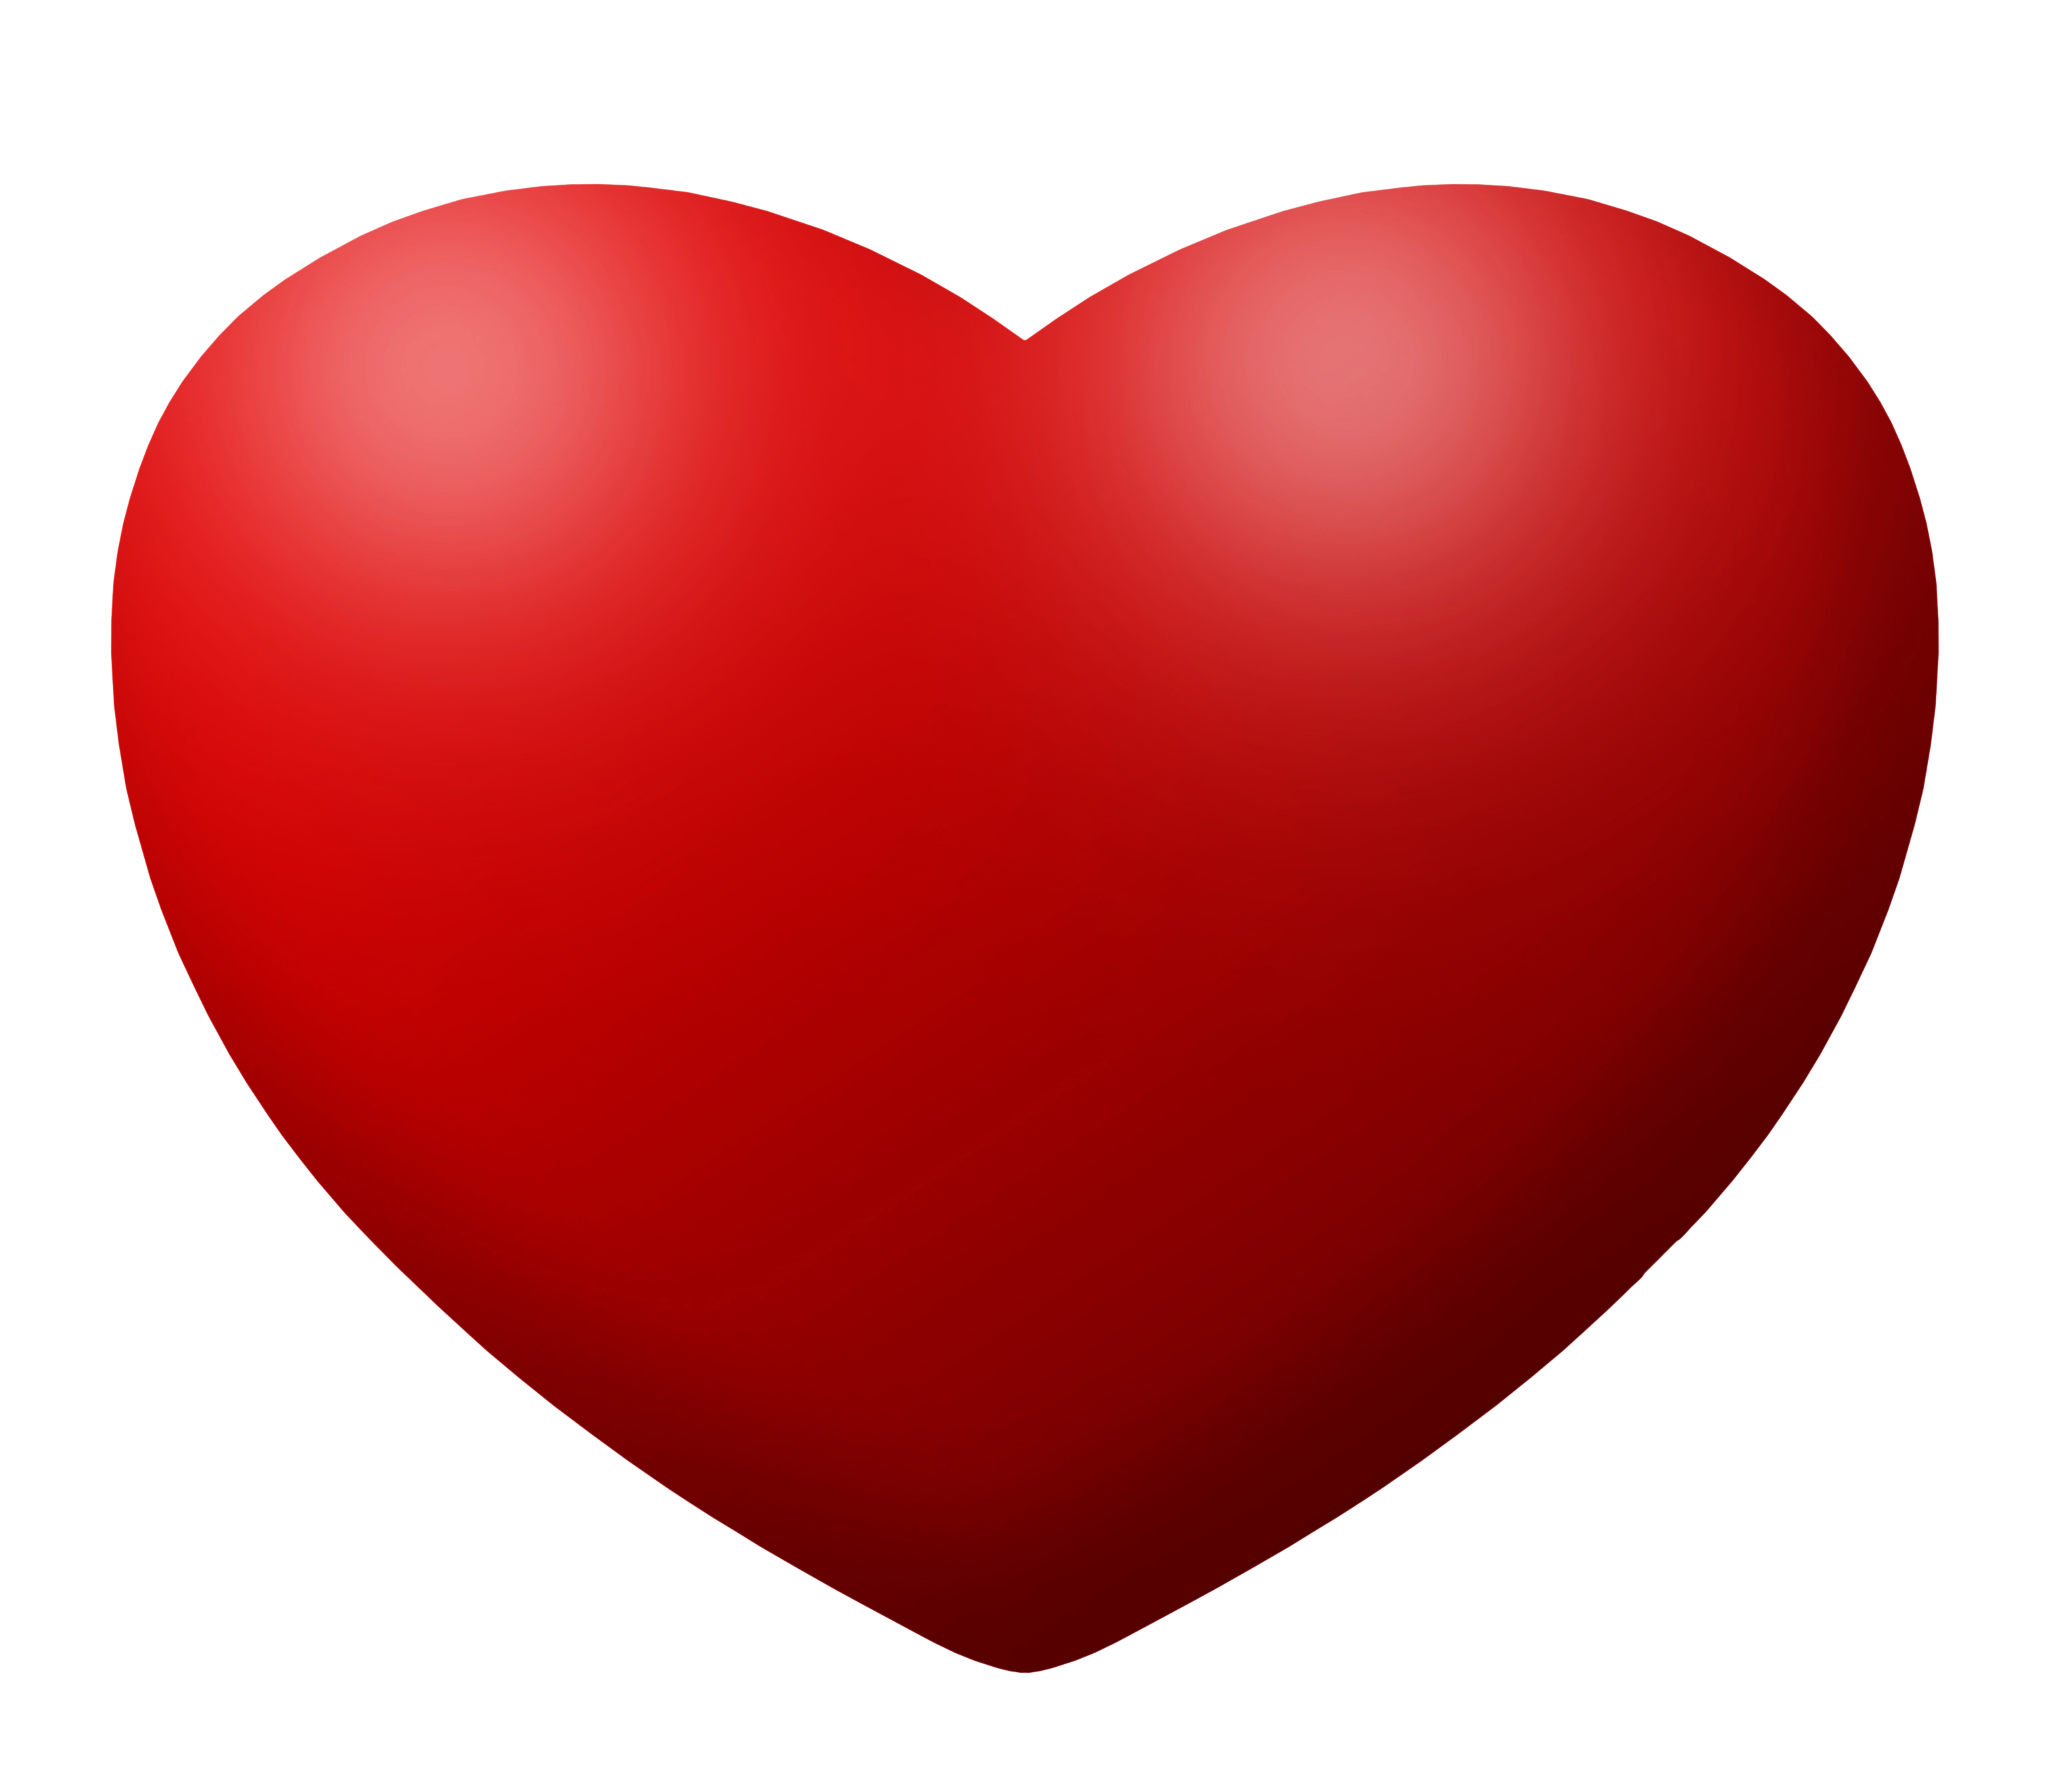 svg free Png free images download. Teaching is a work of heart clipart.